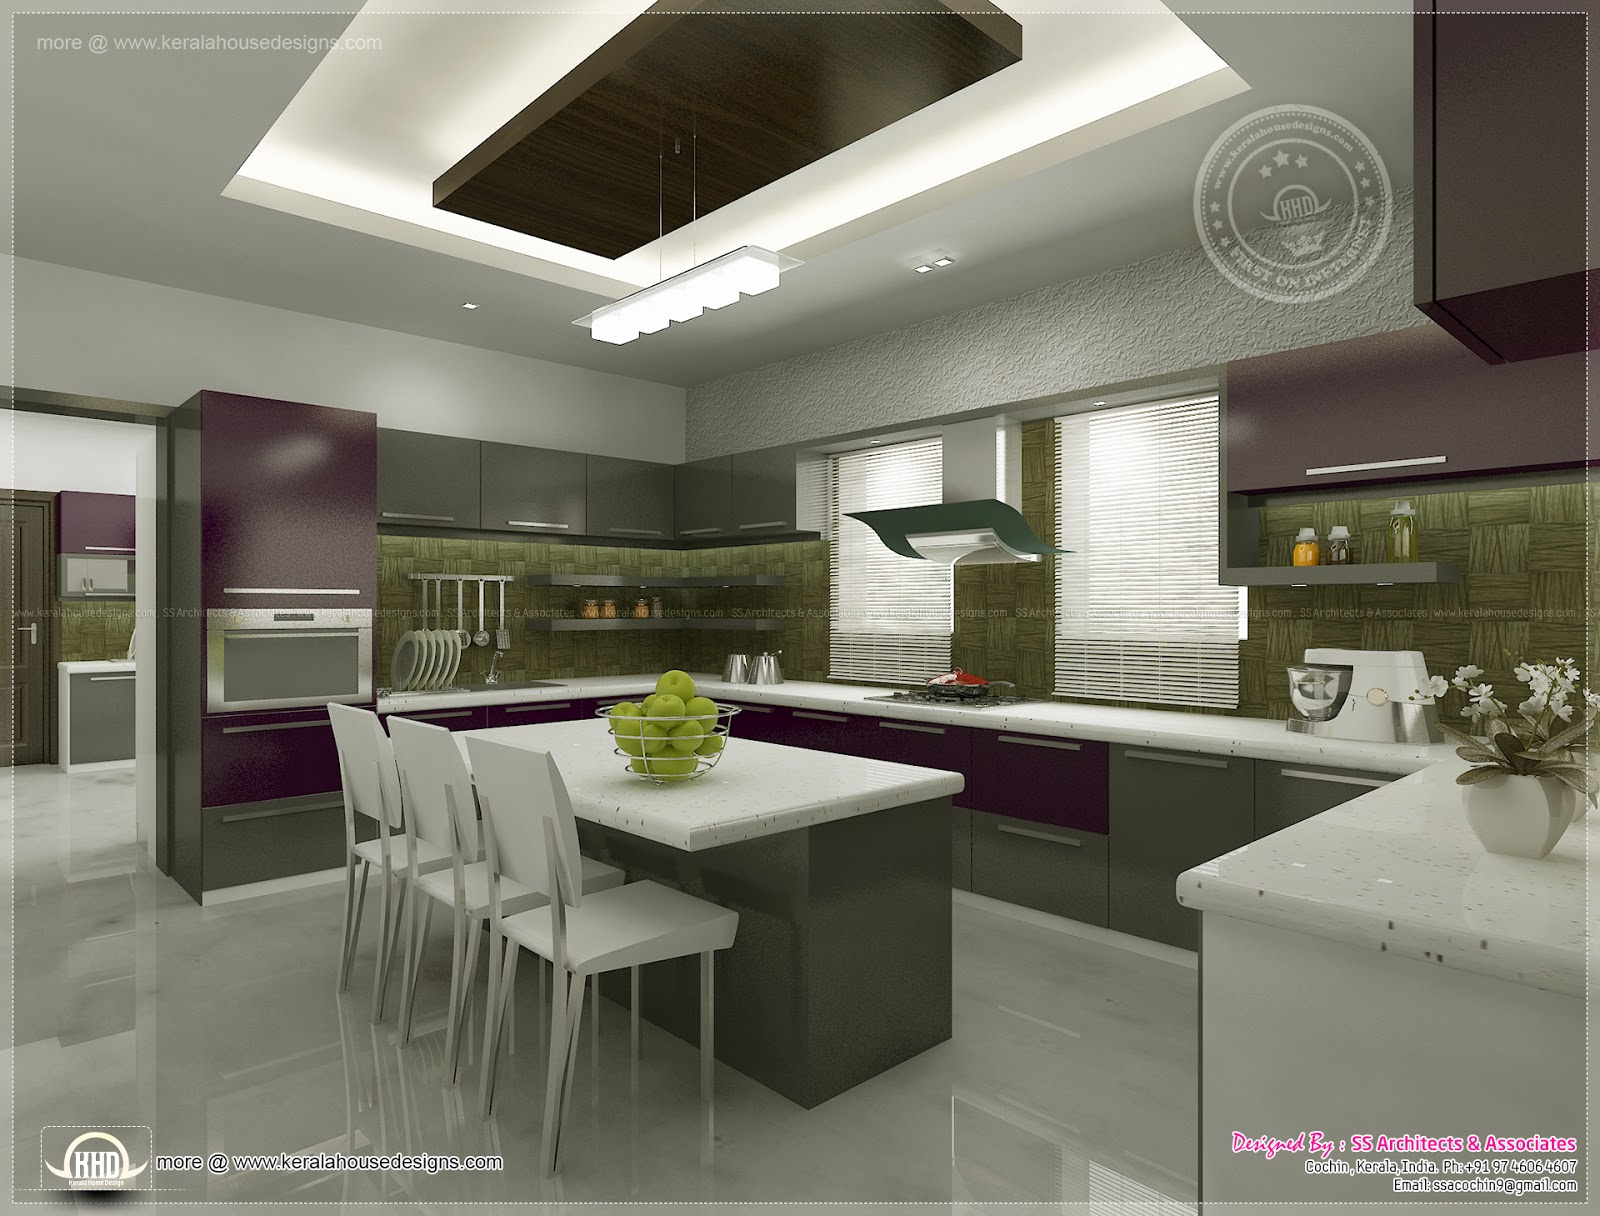 Kitchen interior views by ss architects cochin kerala home design and floor plans Architects and interior designers